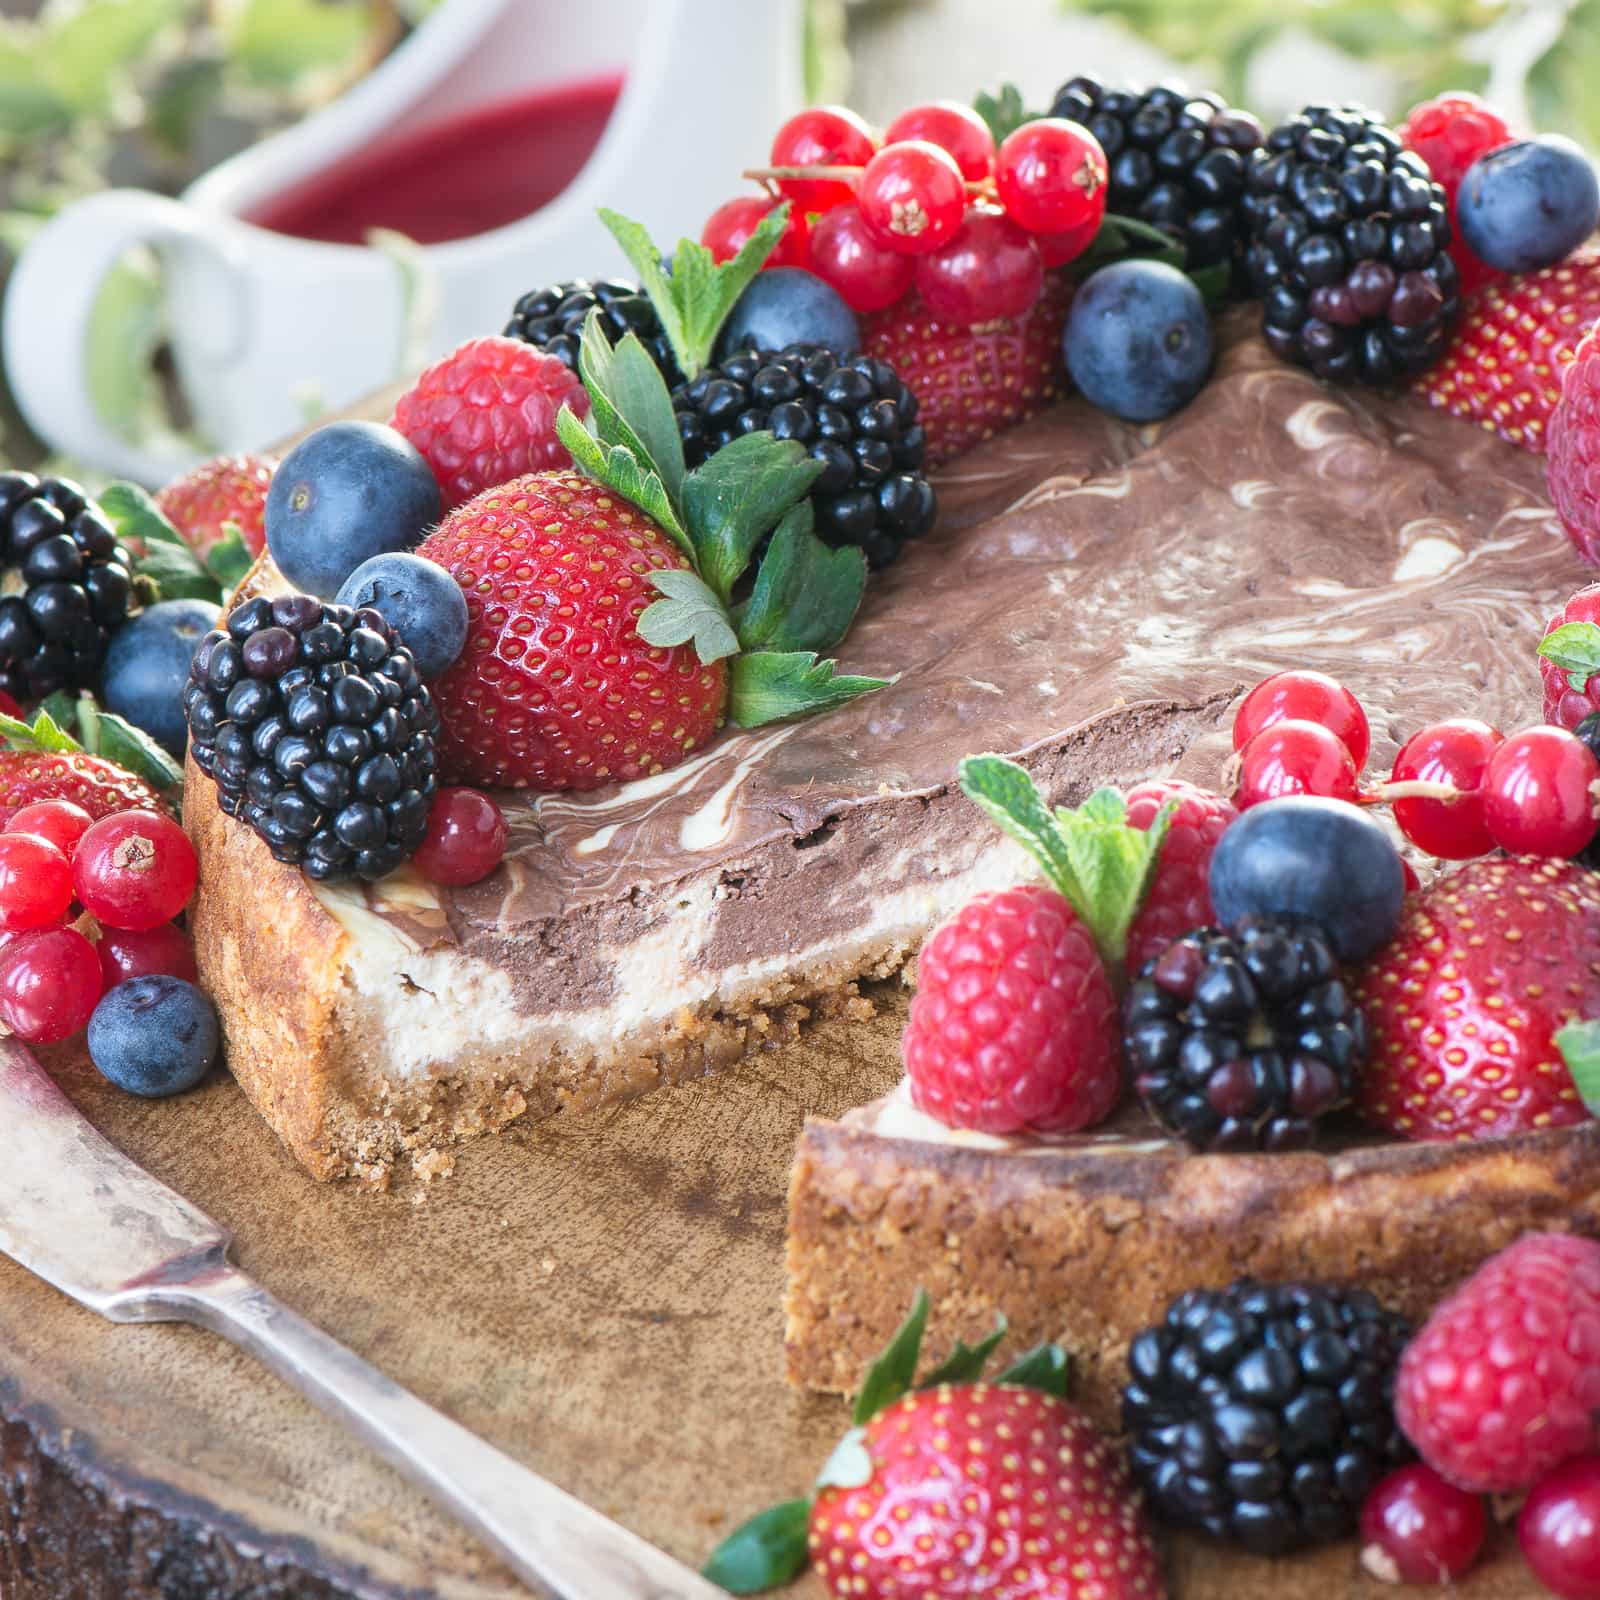 Baked chocolate marble cheesecake topped with fresh fruit with a slice removed.